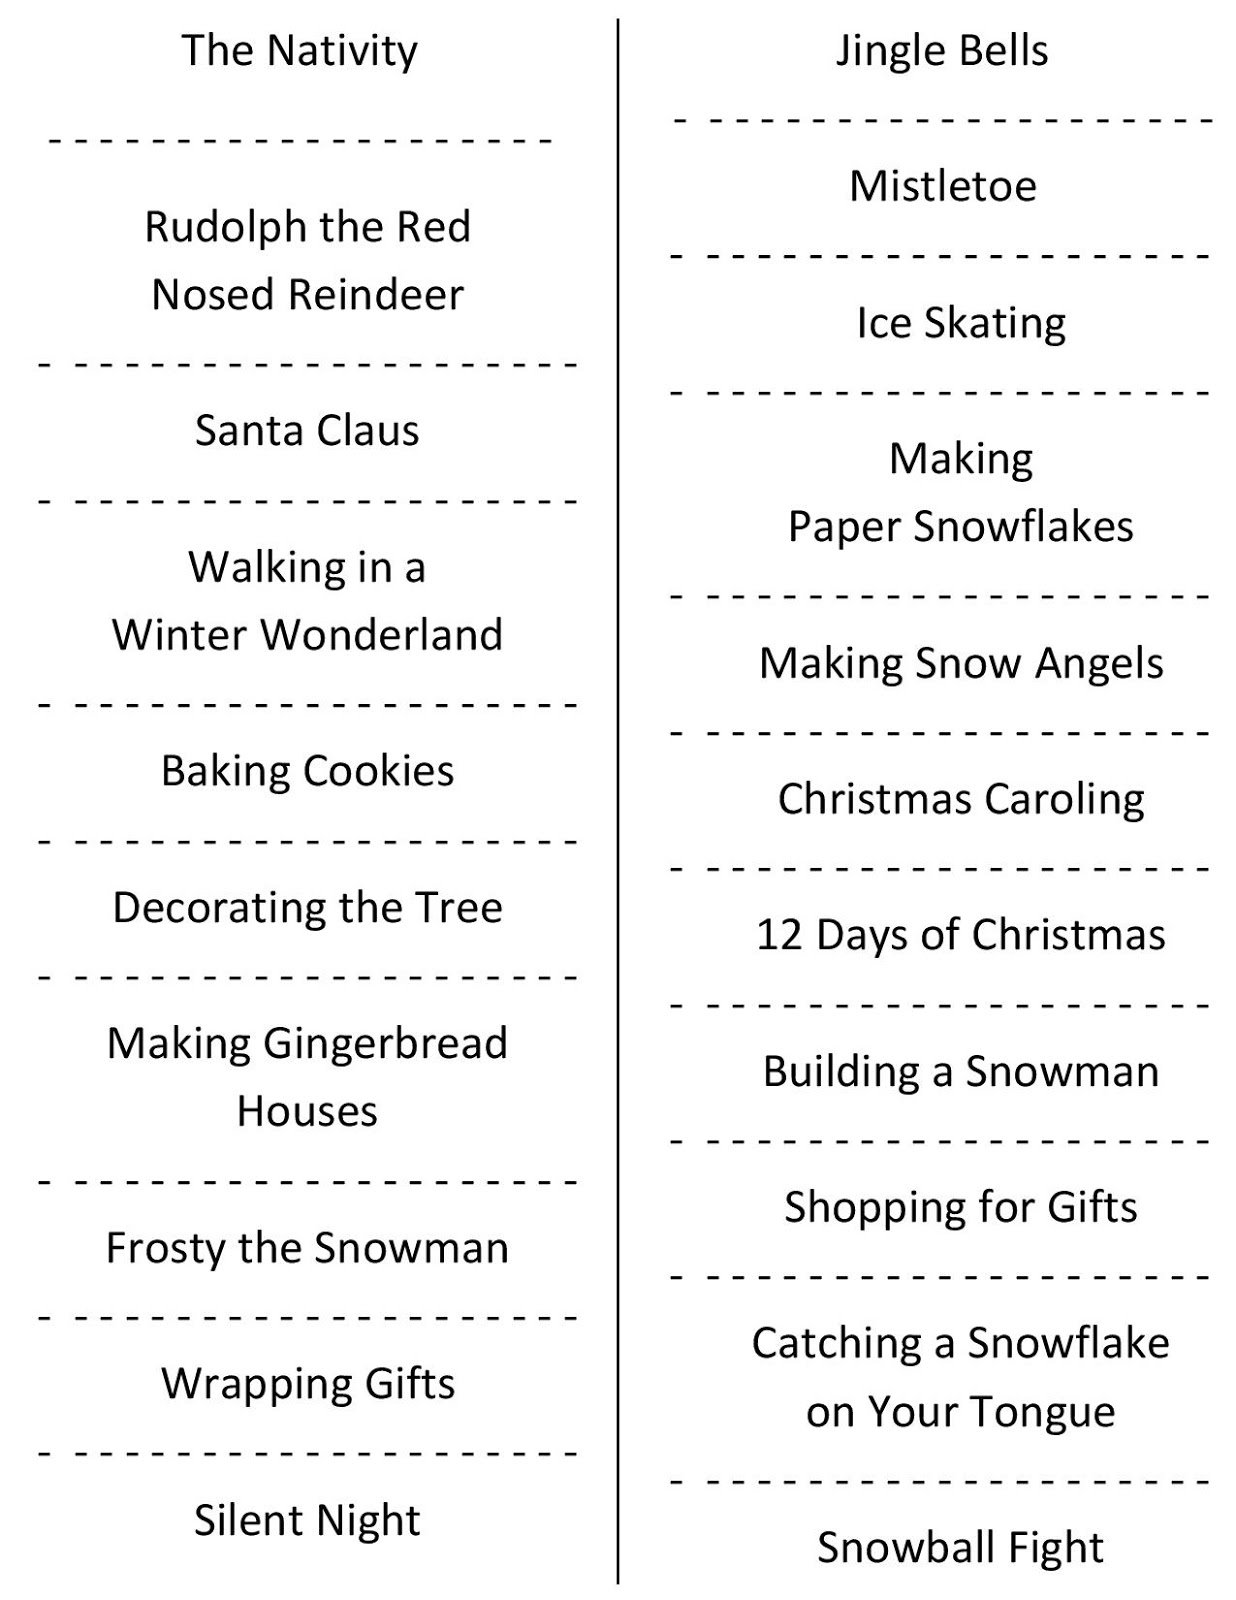 10 Stylish Funny Charades Ideas For Adults christmas charades free printable party game 2 2020